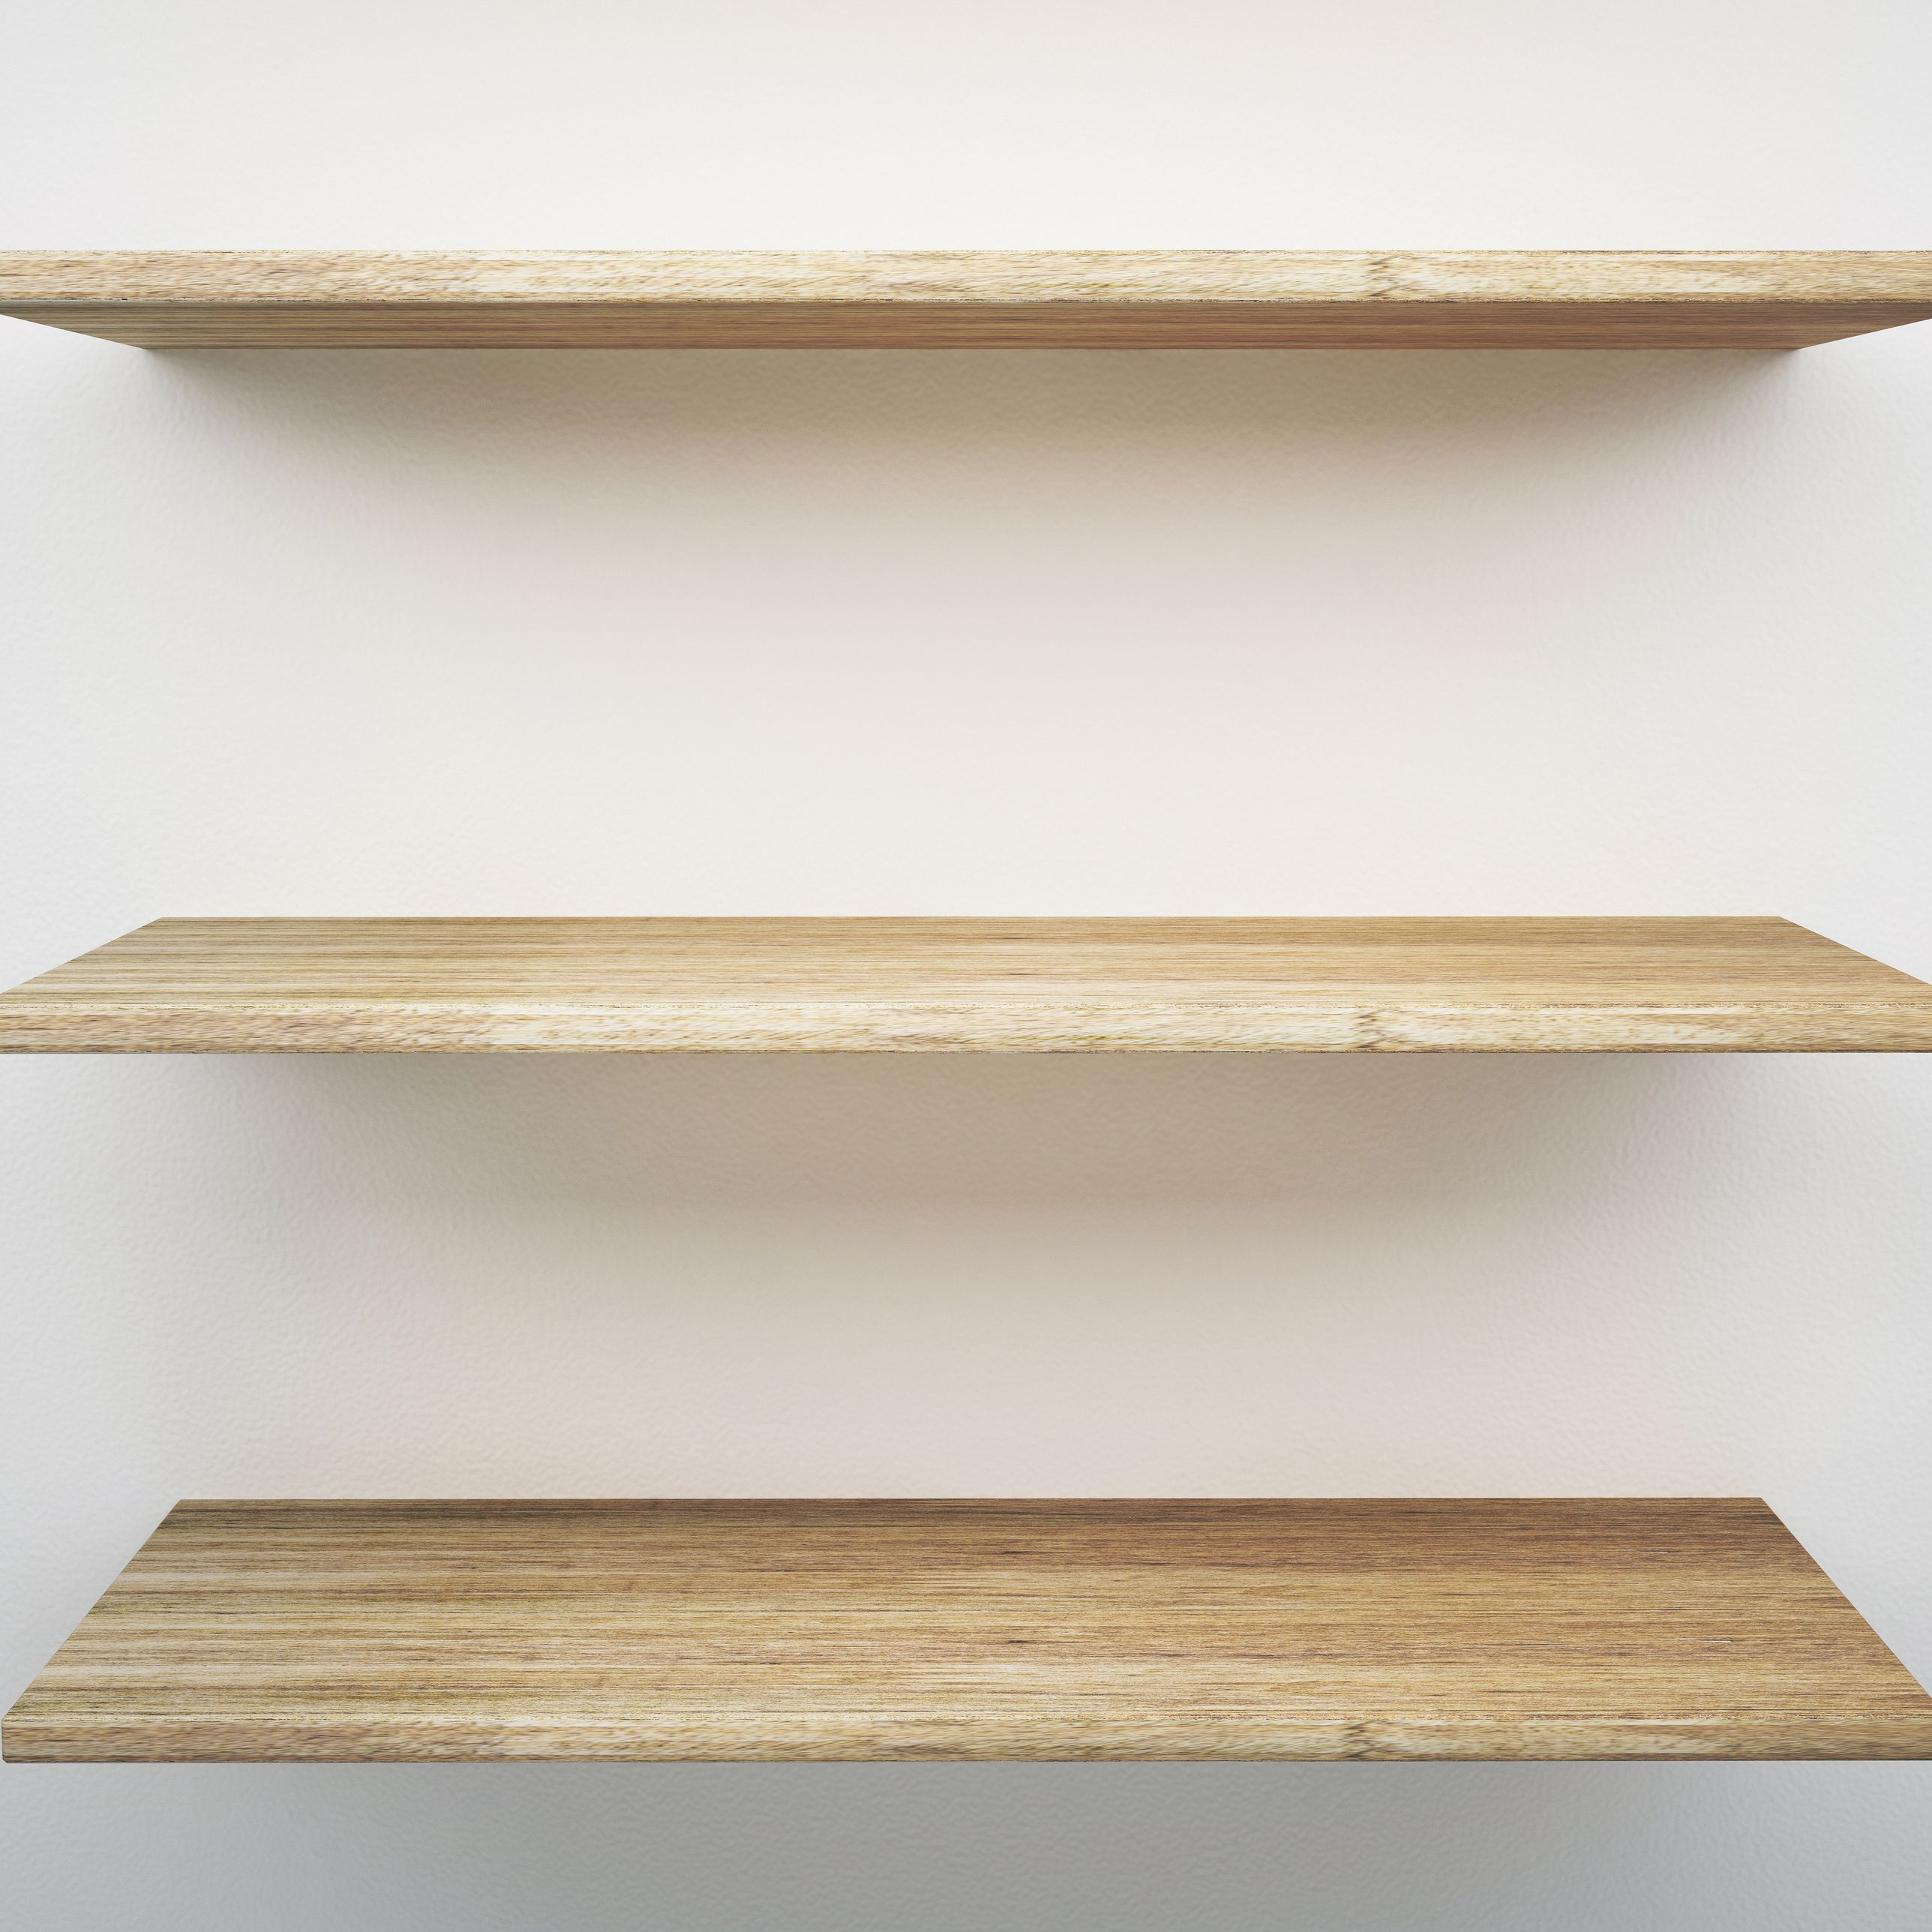 7 Shelves You Can Make From Upcycled